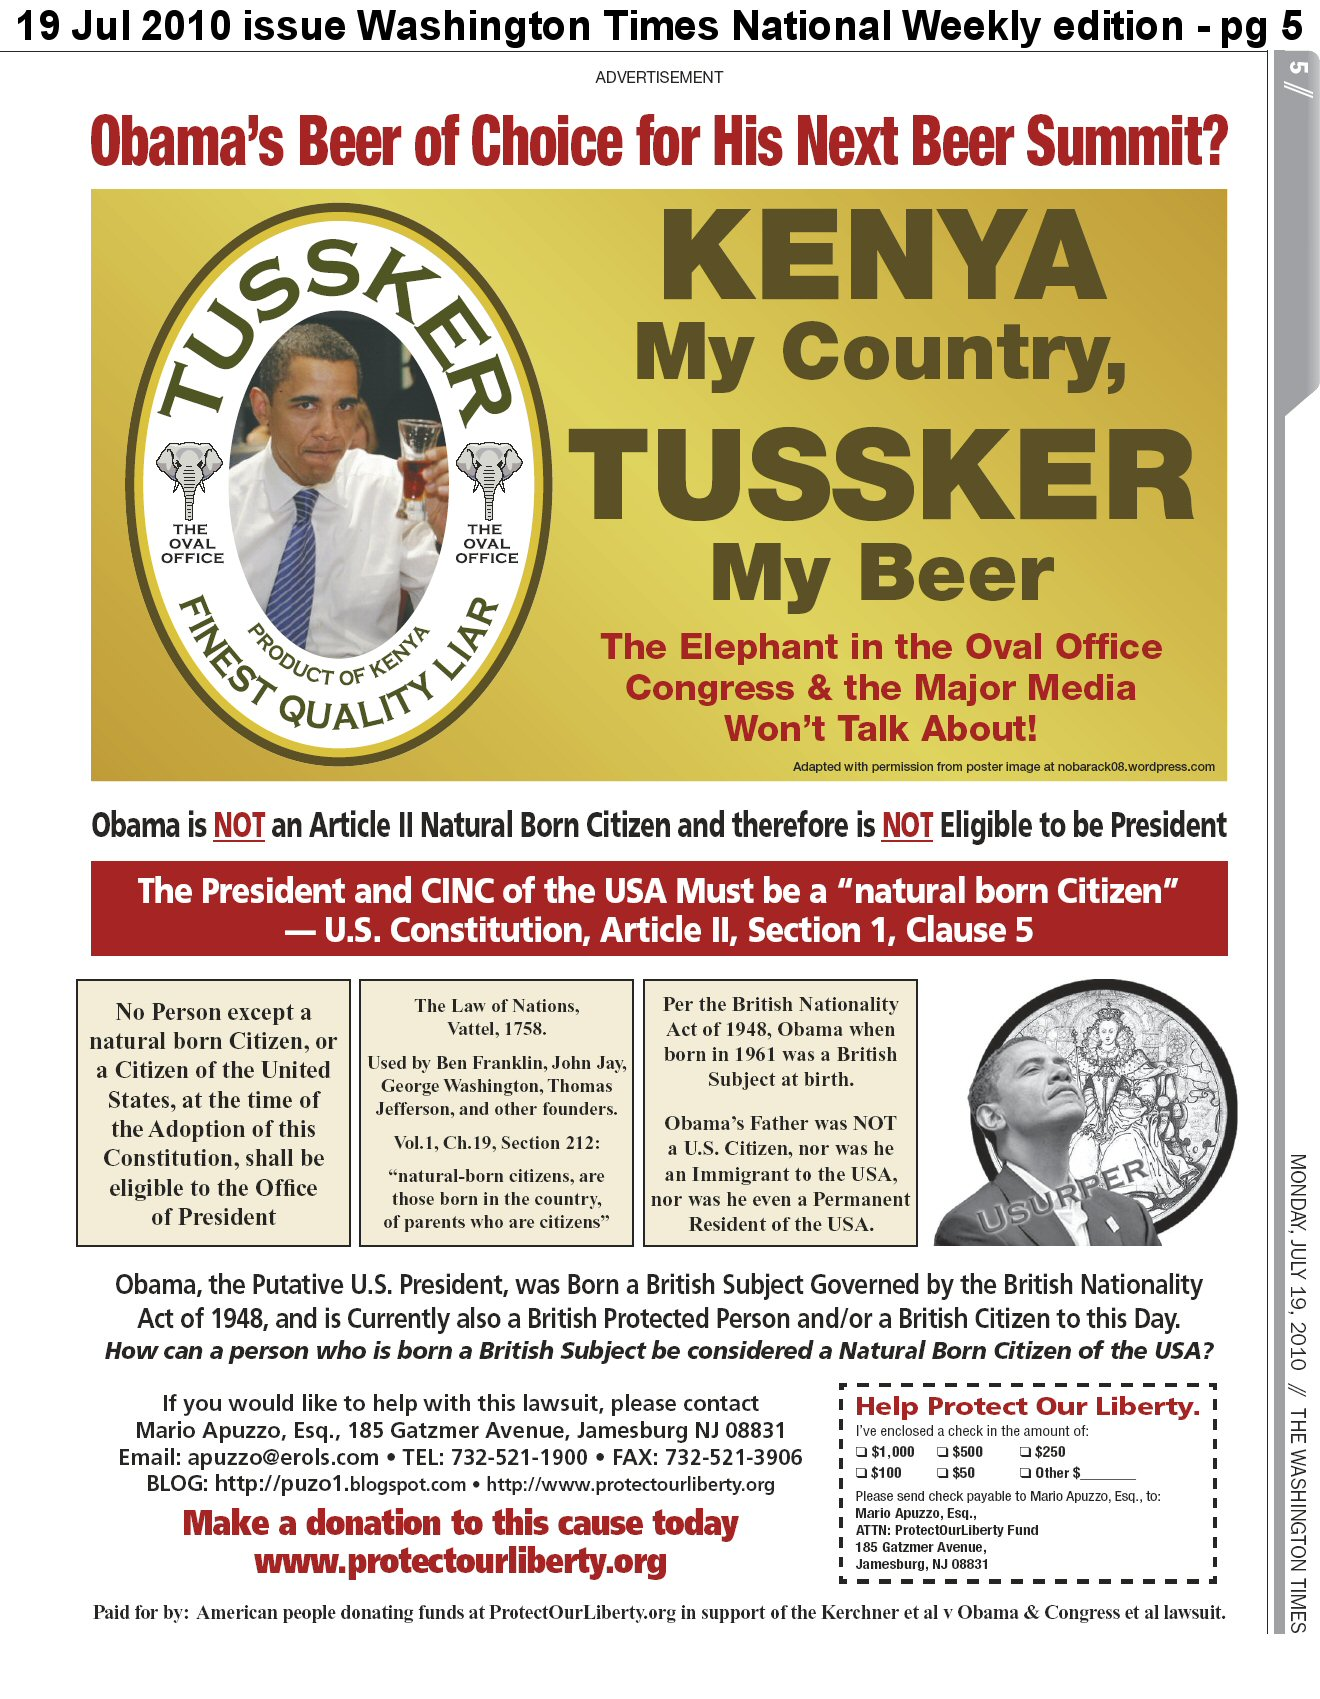 Kenya My Country, Tussker My Beer